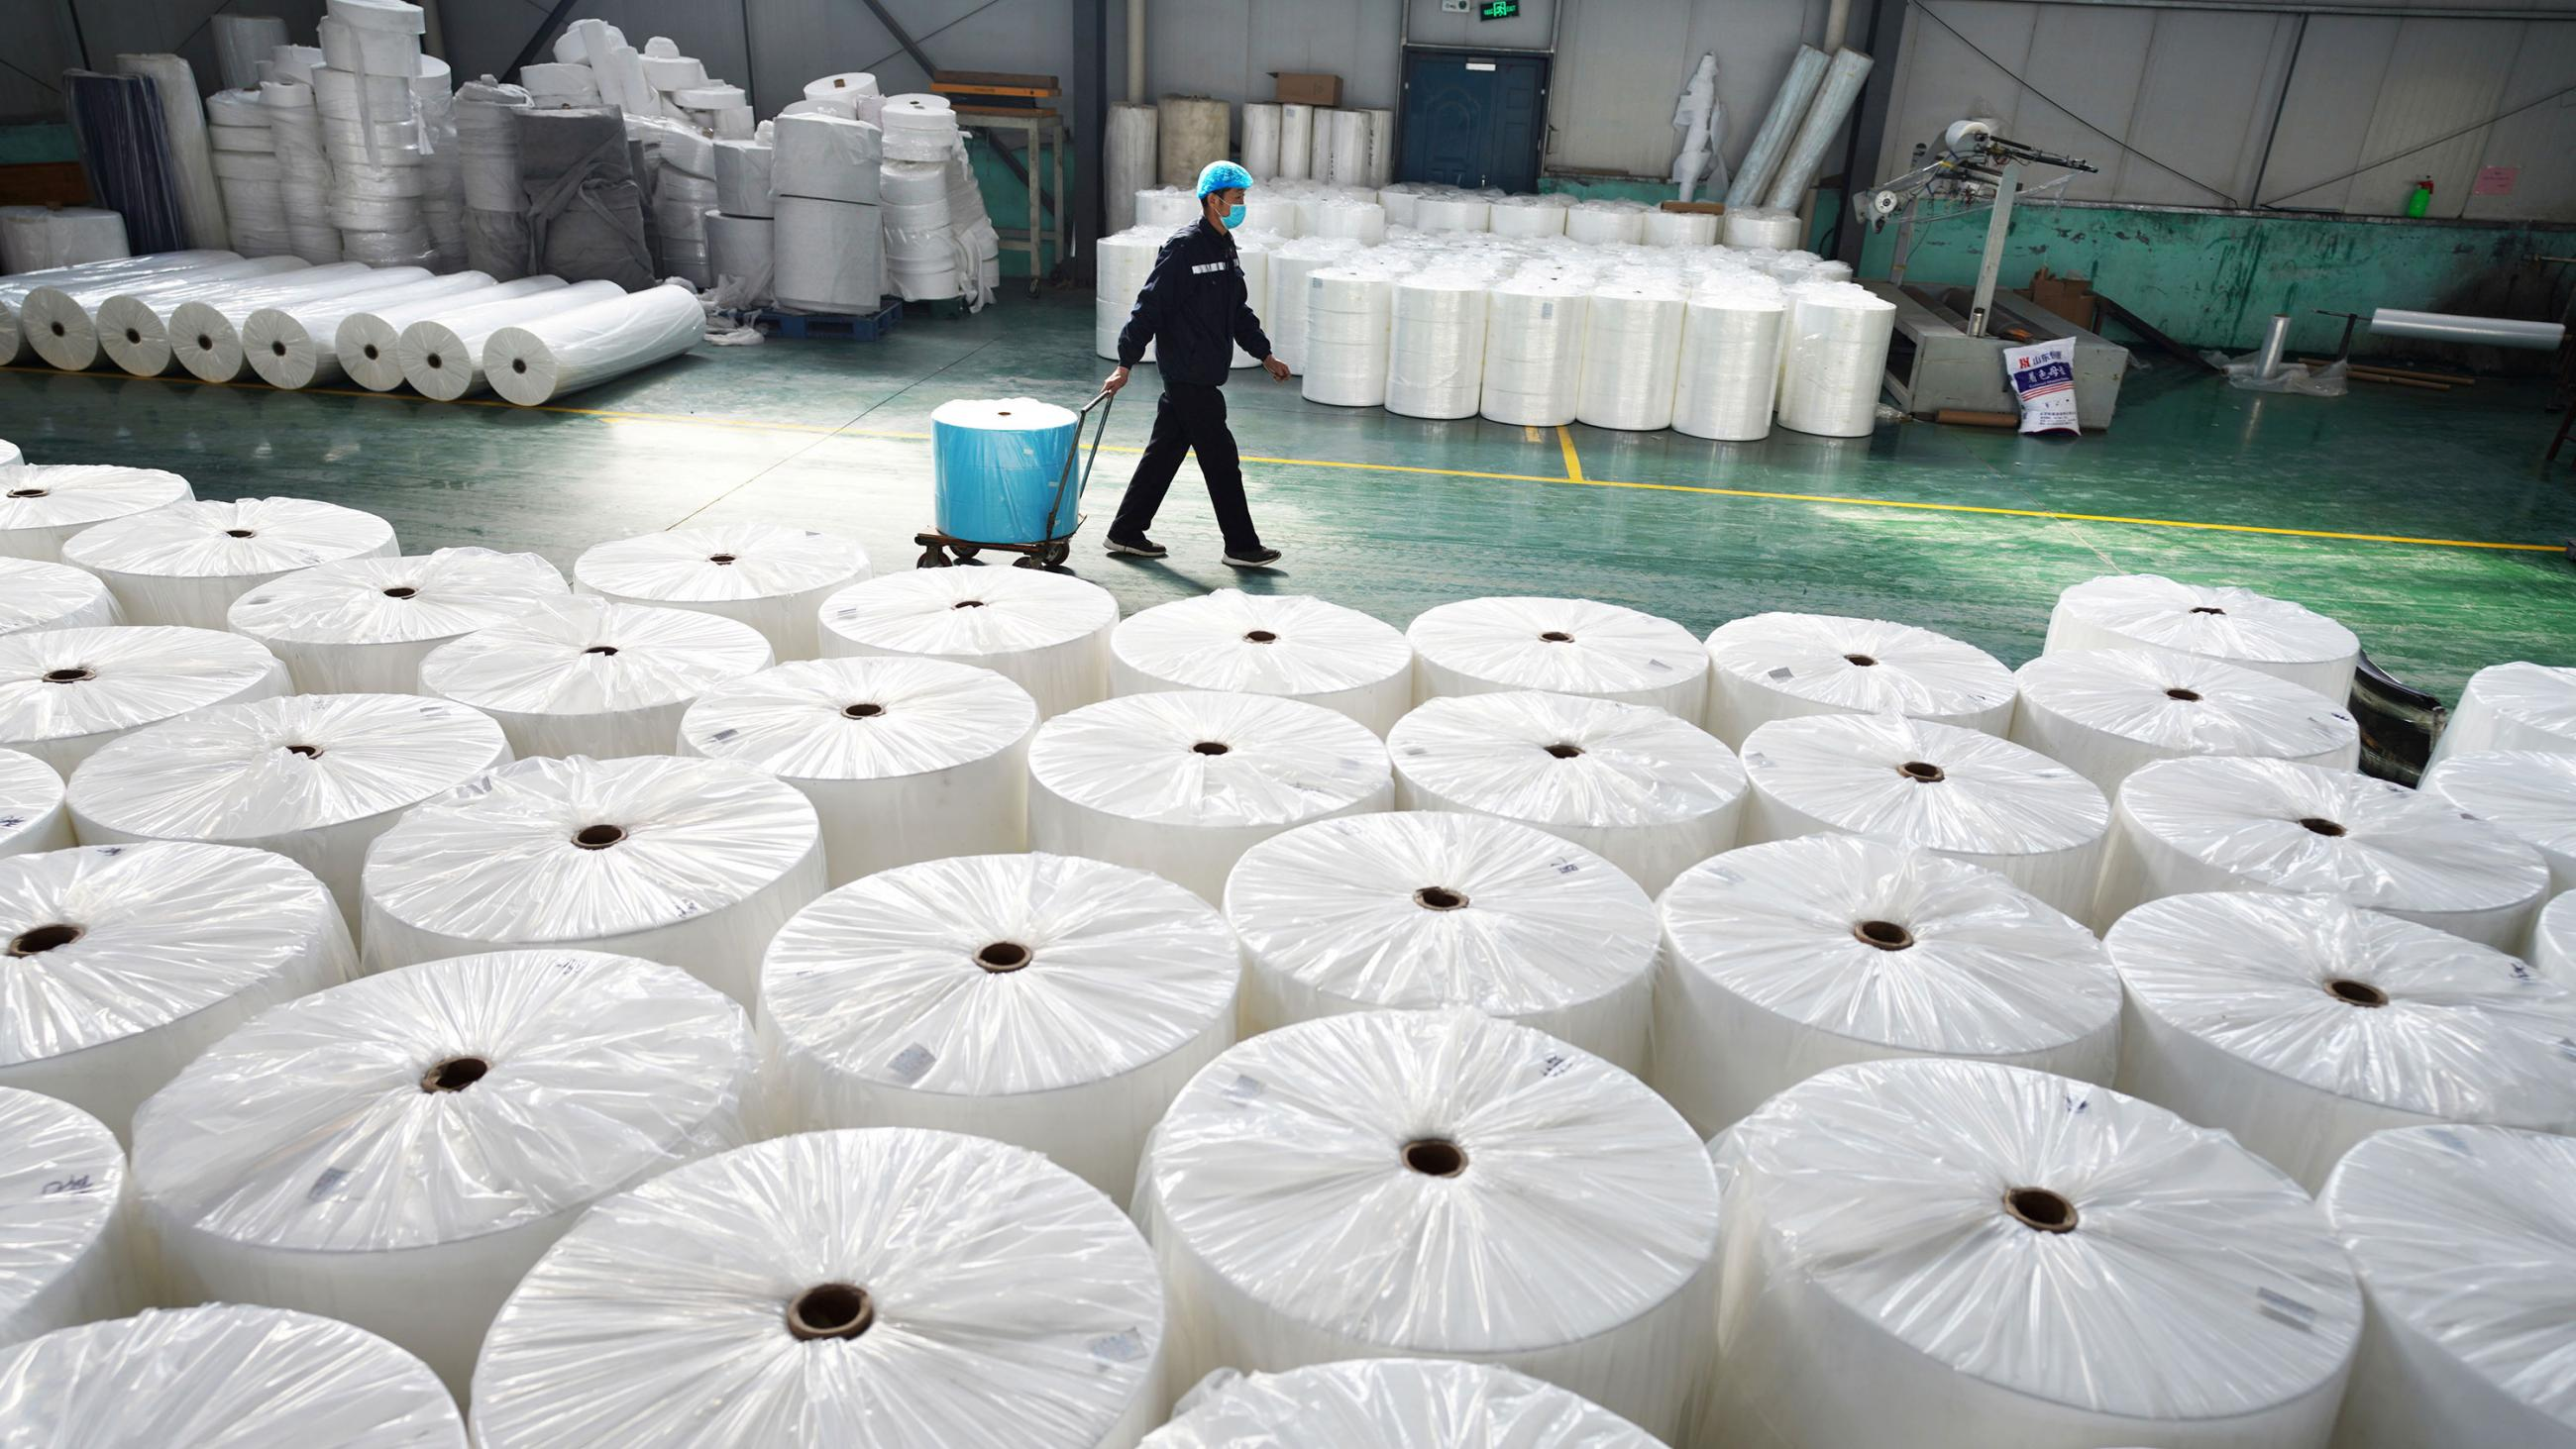 Picture shows a large factory space with a massive stack of large fabric spools in the foreground and a single worker waling by in the background.